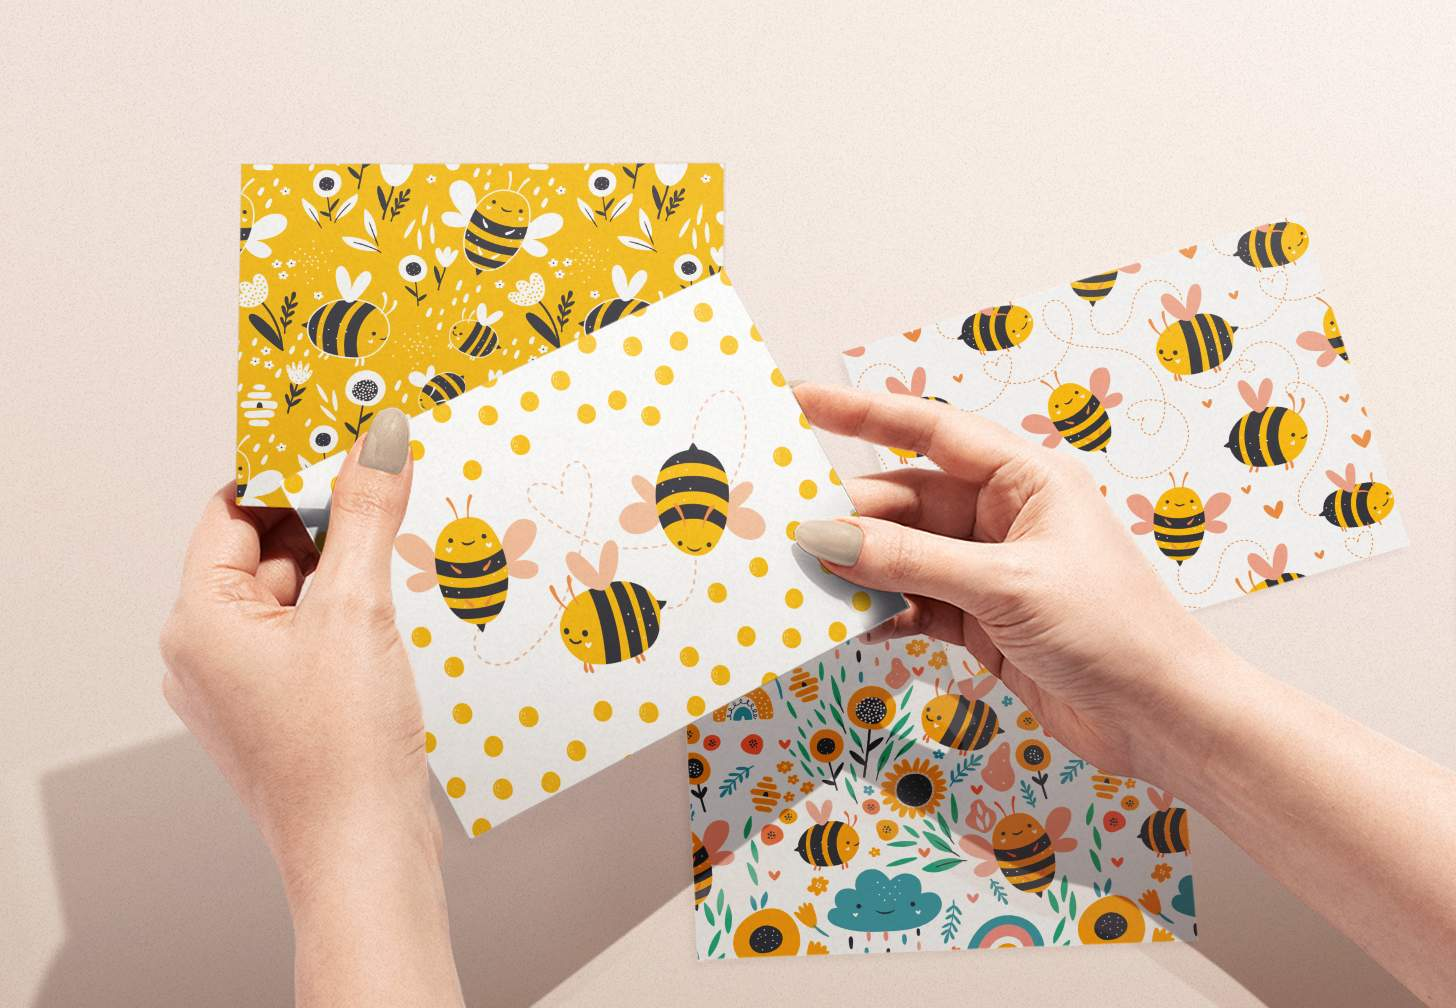 Woman's hands holding card with cute bumble bees design and assorted bumble bee cards in background